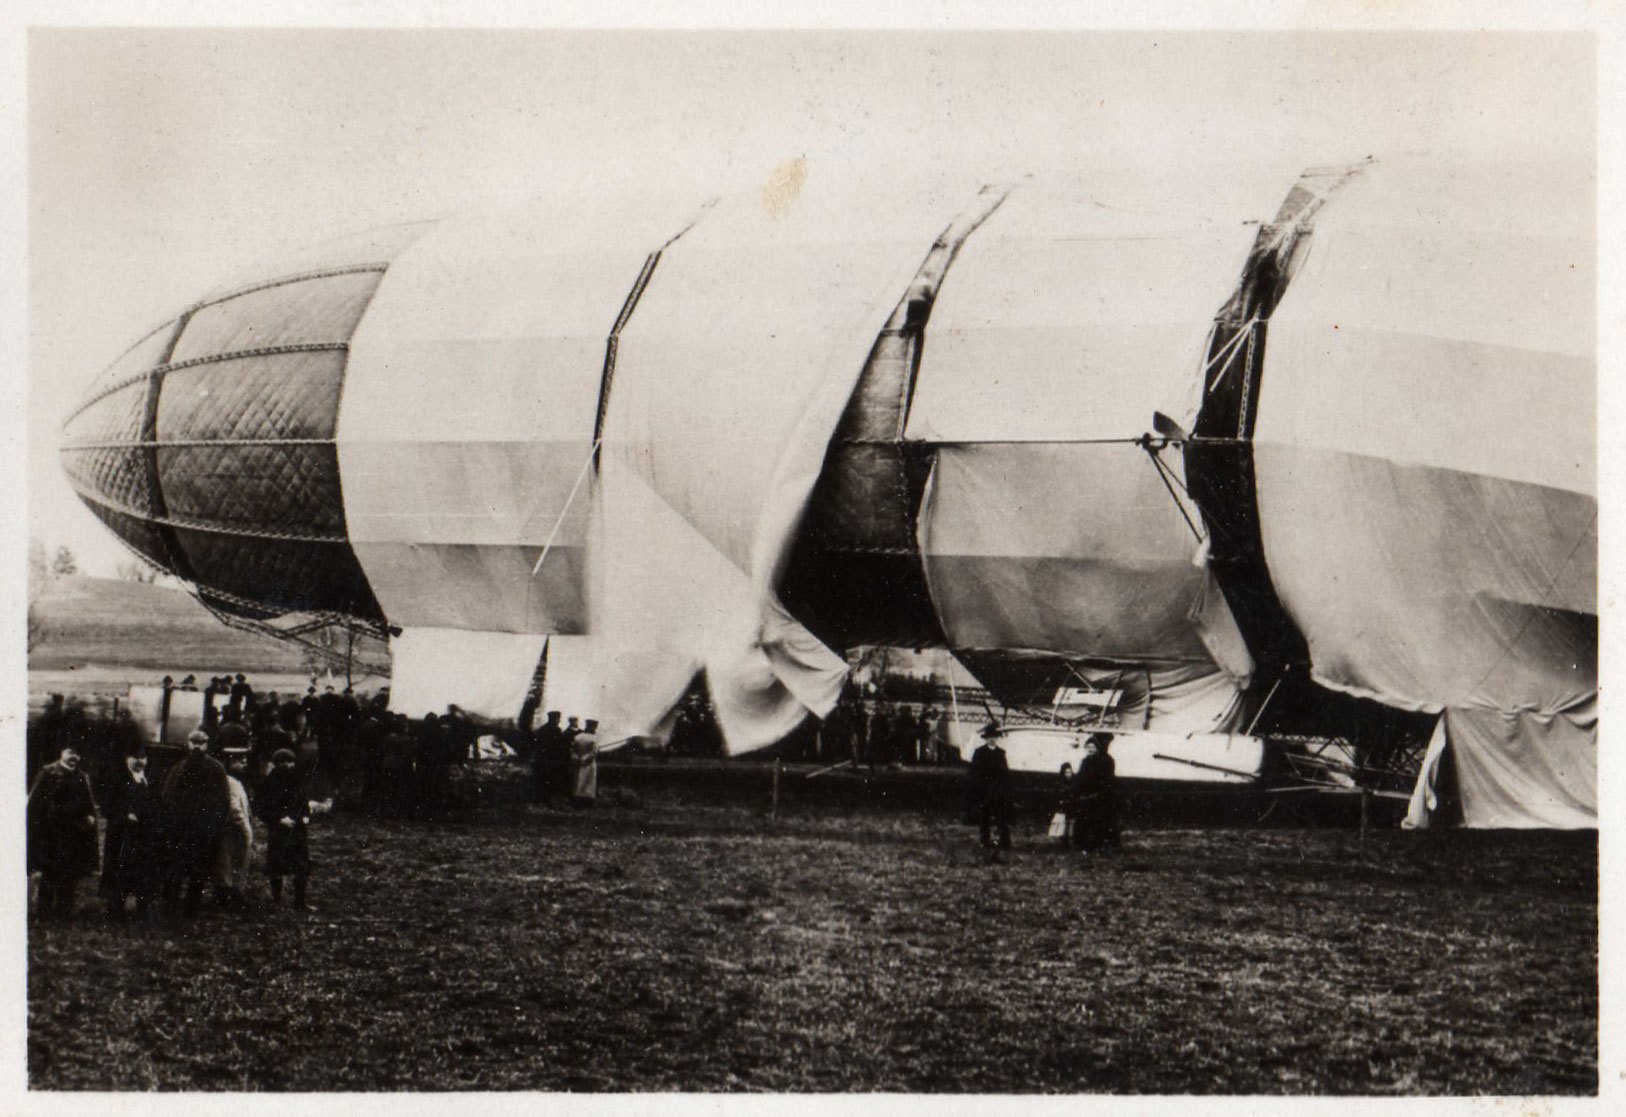 The Zeppelin LZ 2 destroyed, January 18, 1906.